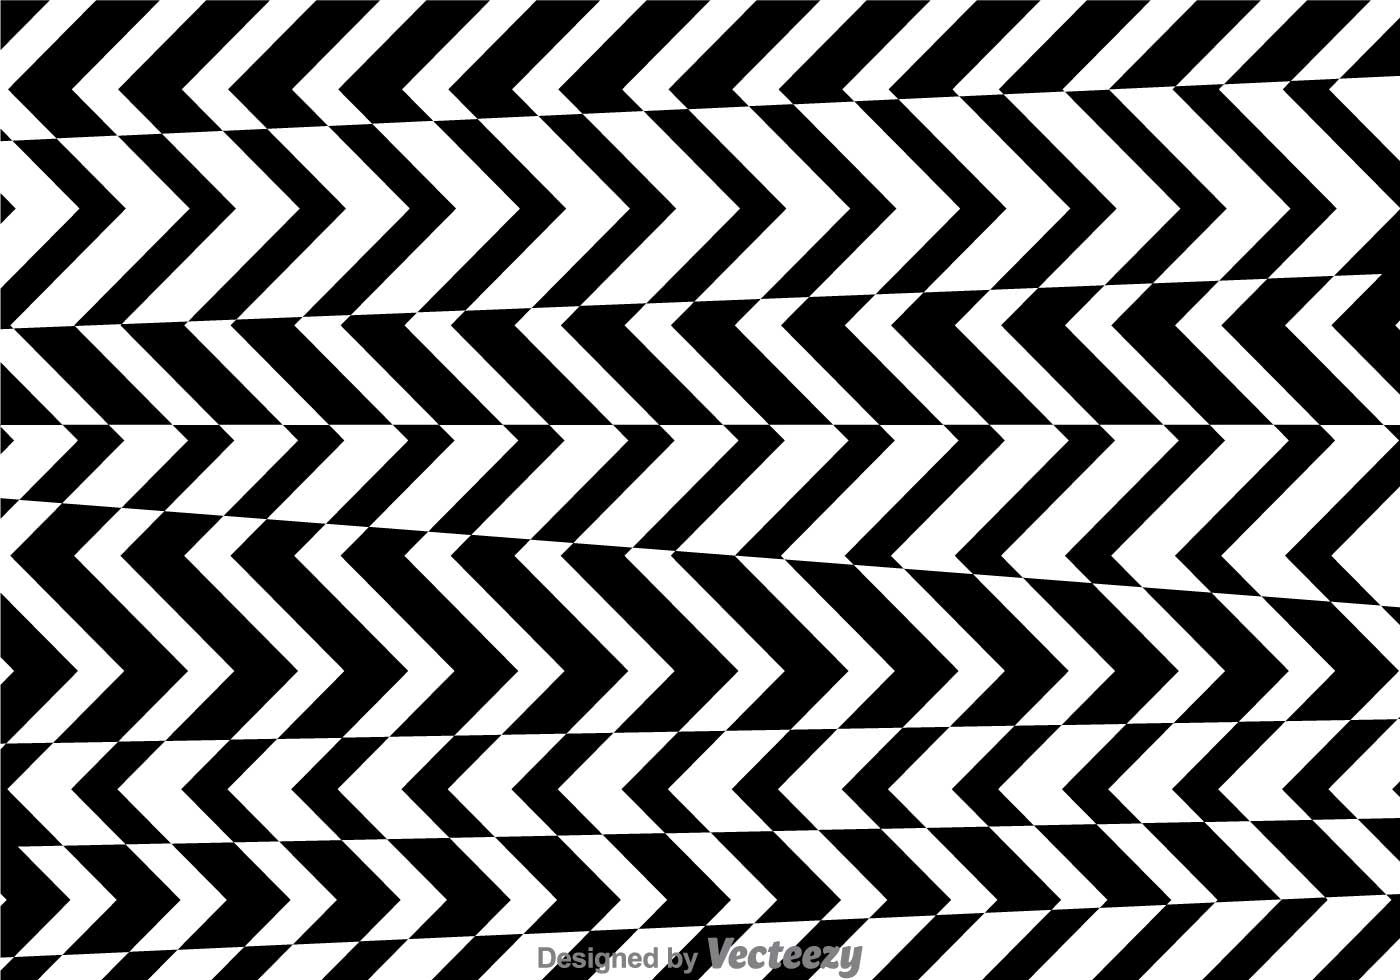 Cool black and white patterns vector - photo#24